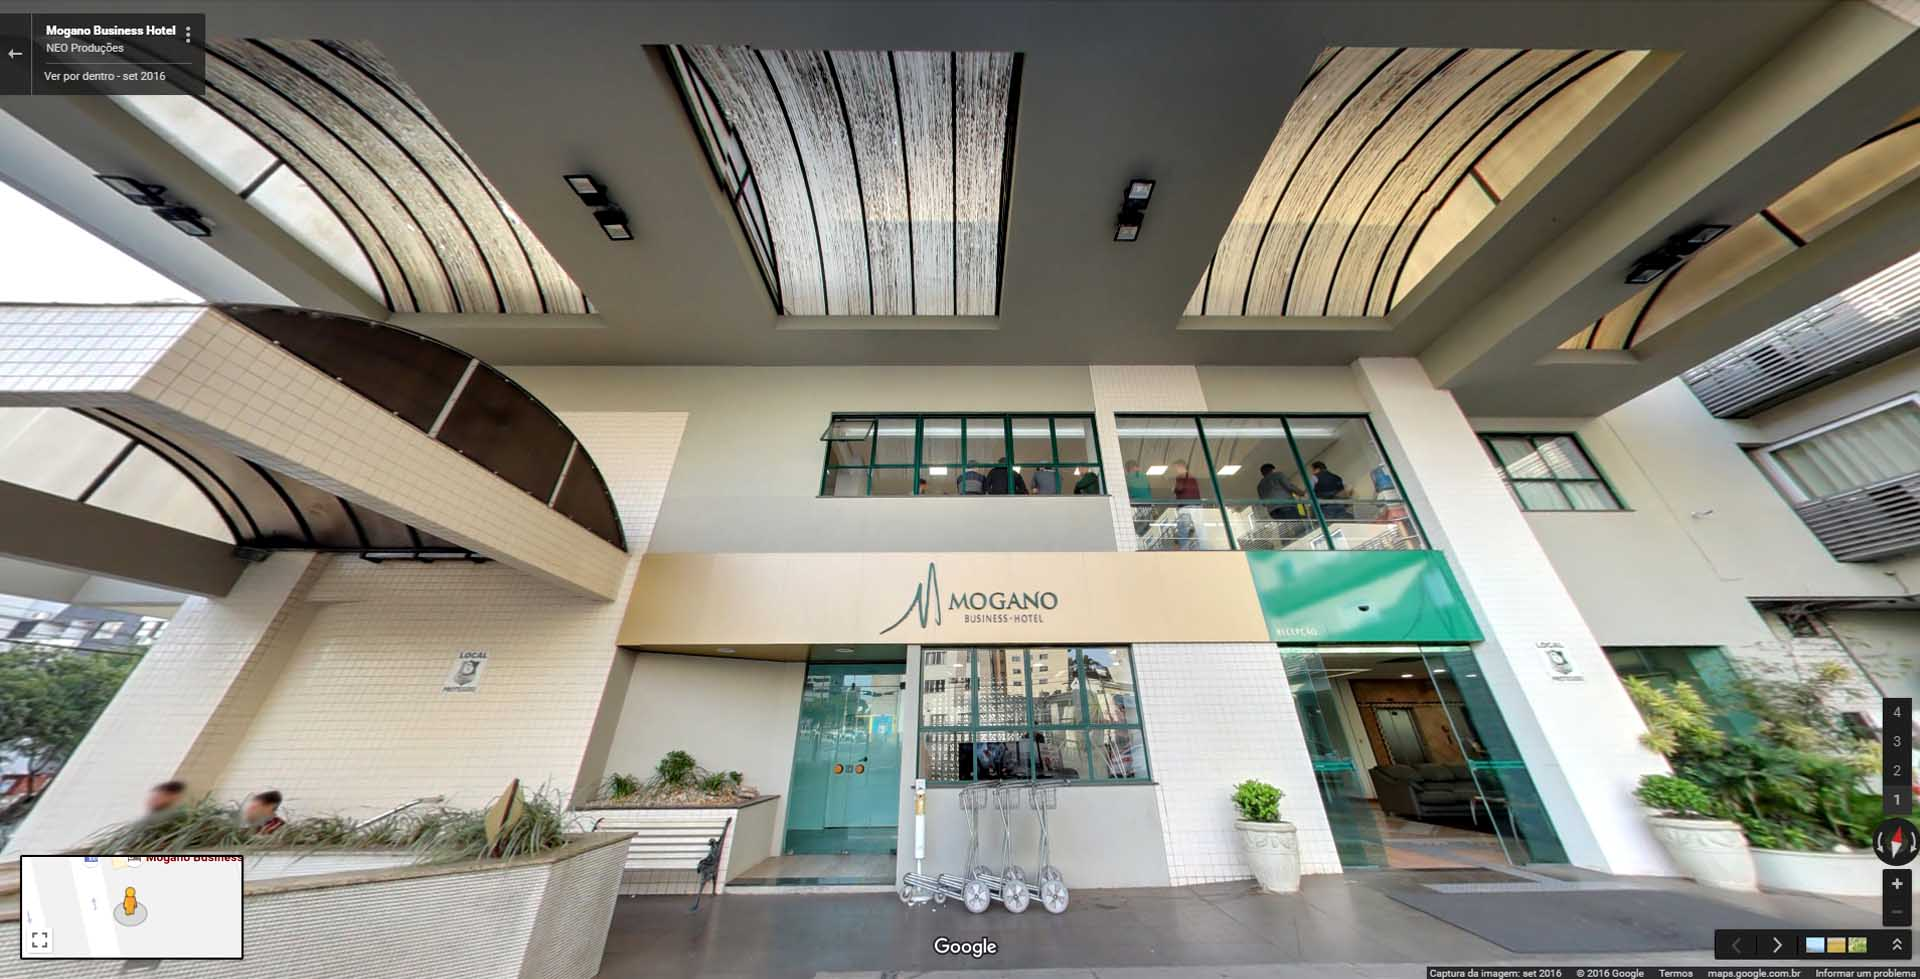 Mogano Business Hotel